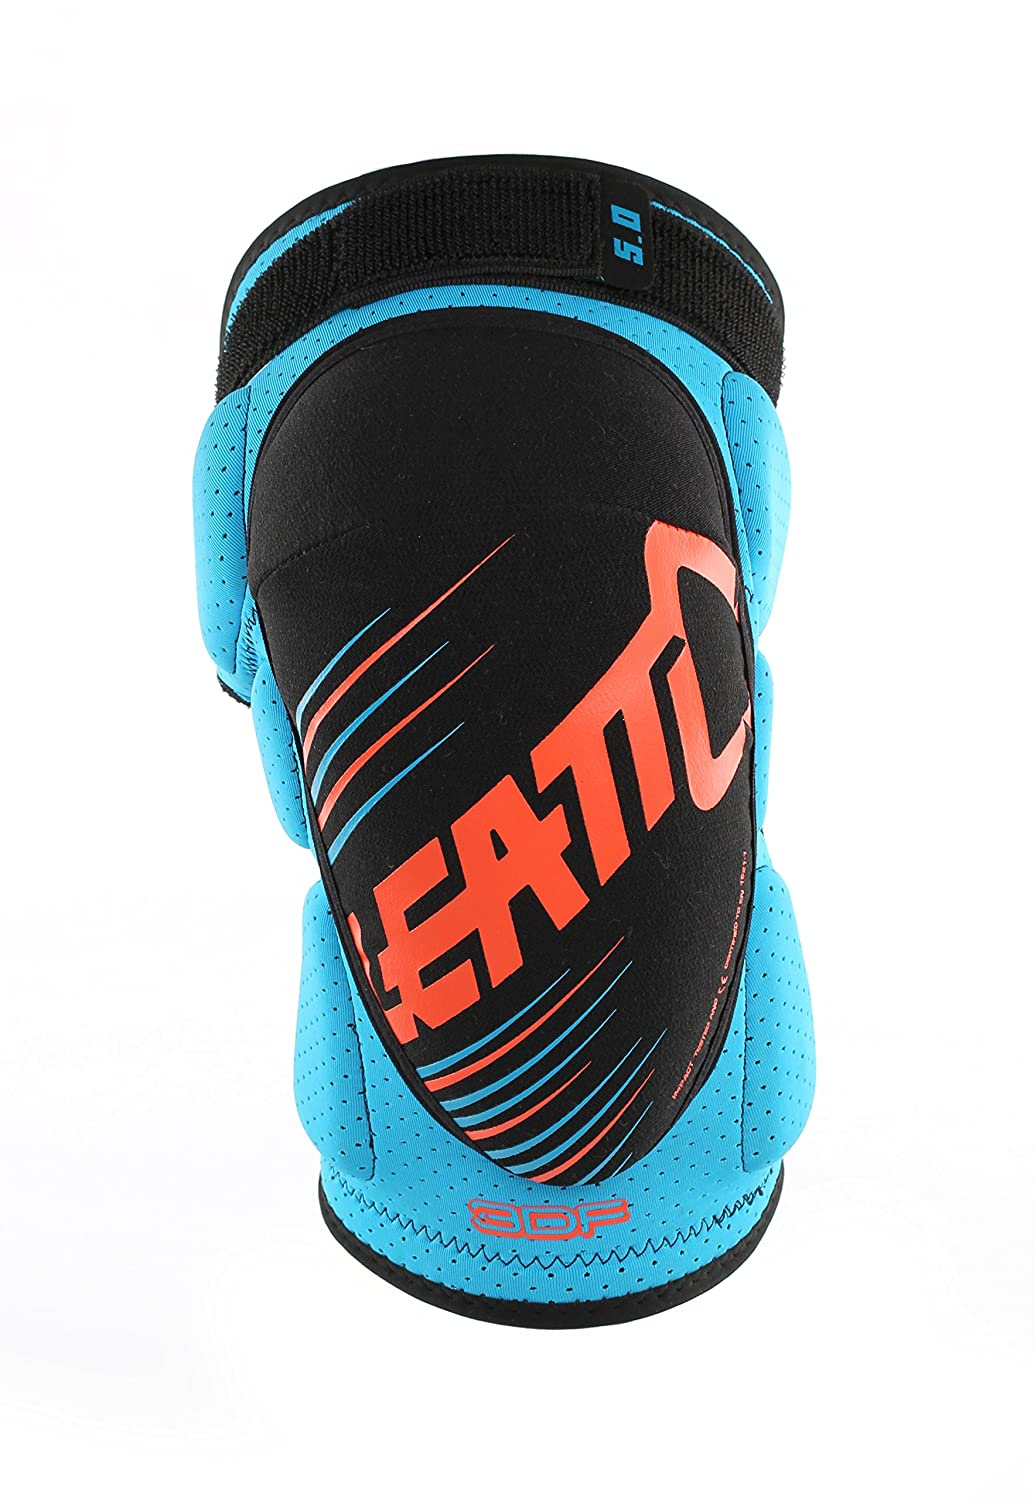 Leatt 3DF 5.0 Protection Orange//Bleu 2018 Protection VTT